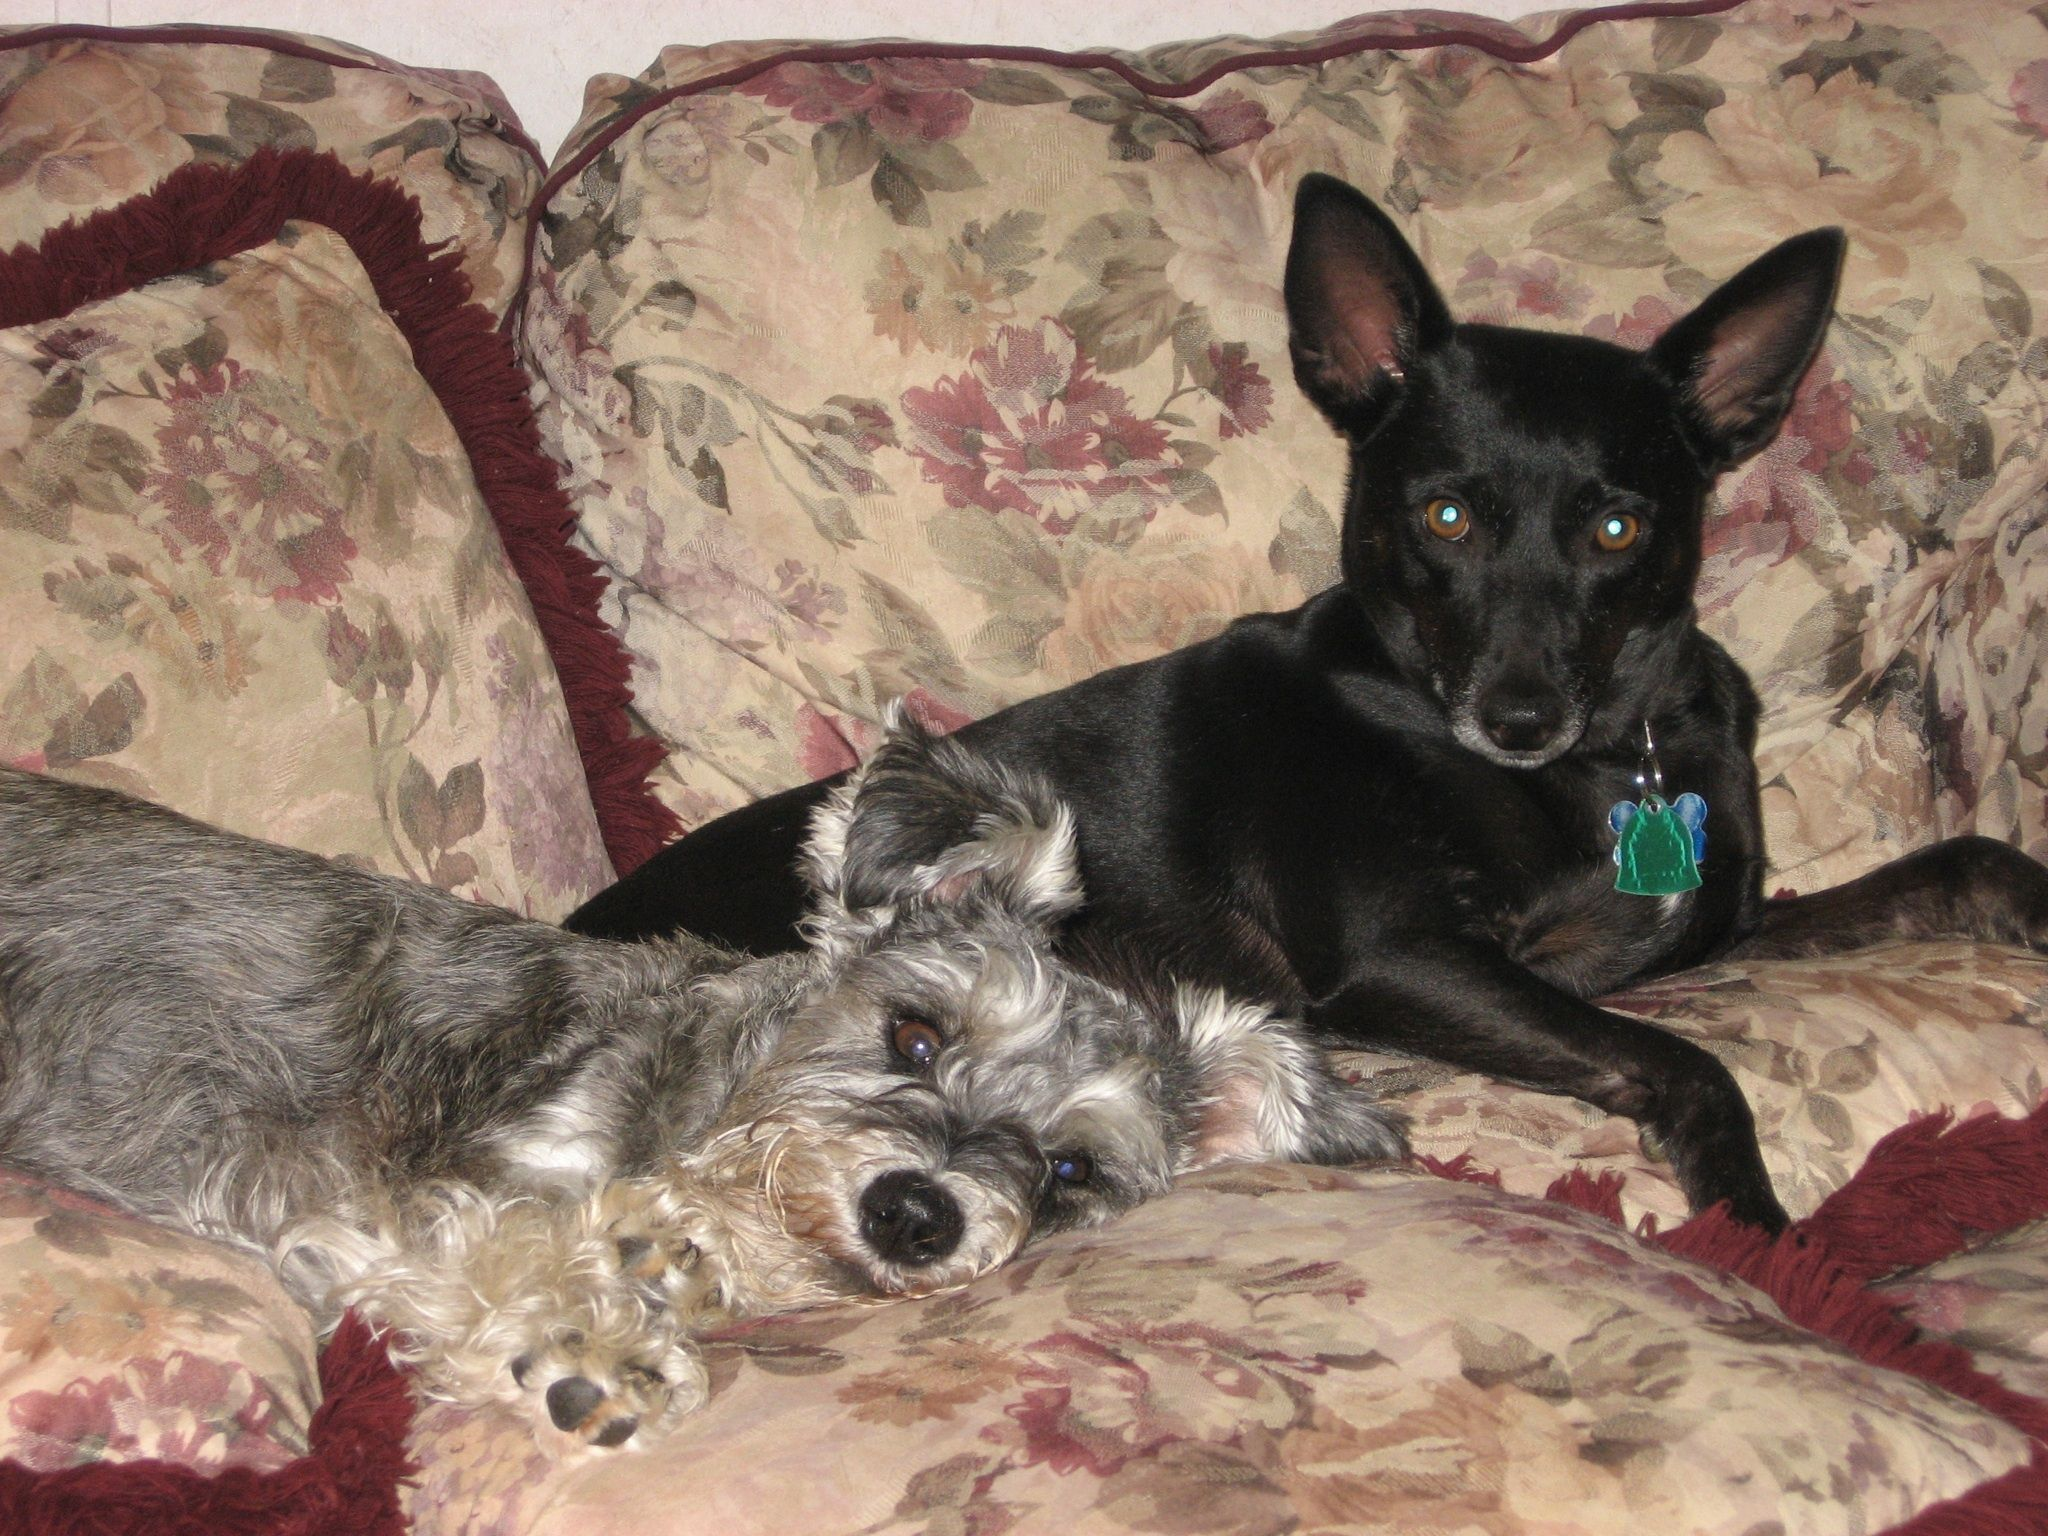 Scruffy & Buddy taking it easy on the love seat.  They were a bonded pair - Buddy passed away from cancer.